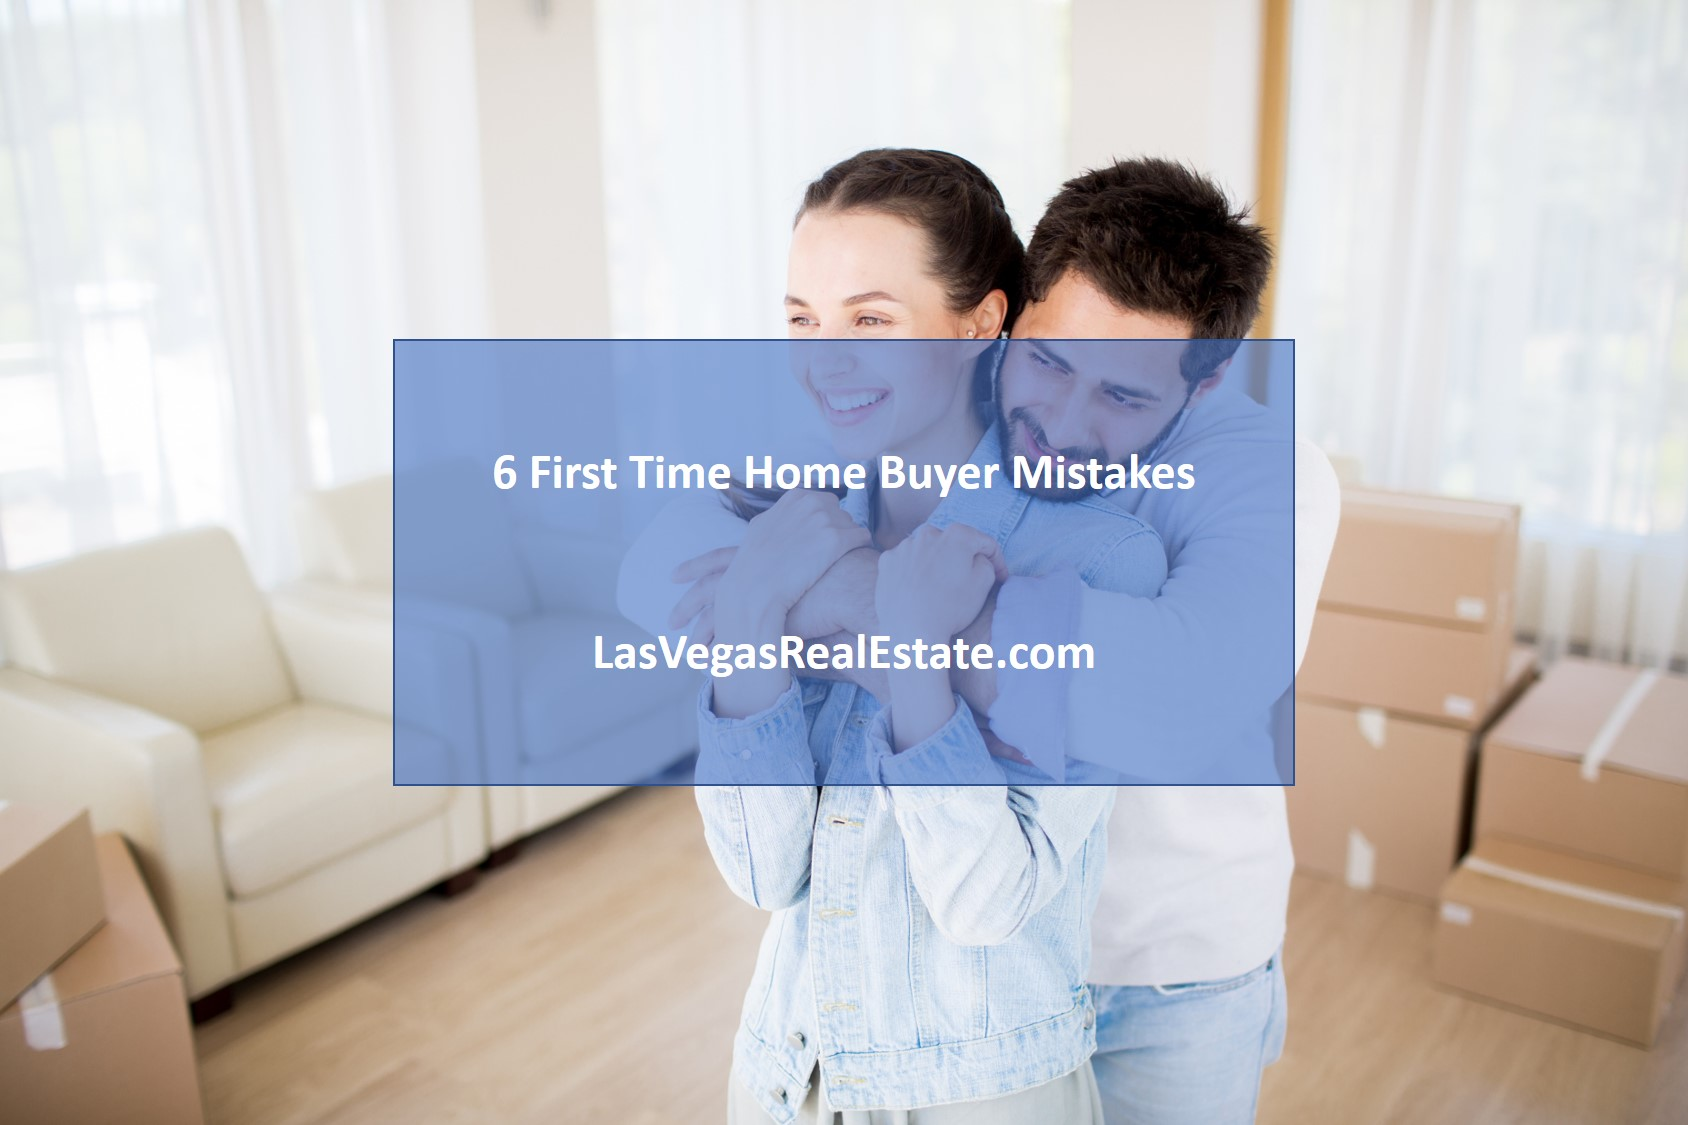 6 First Time Home Buyer Mistakes - LasVegasRealEstate.com